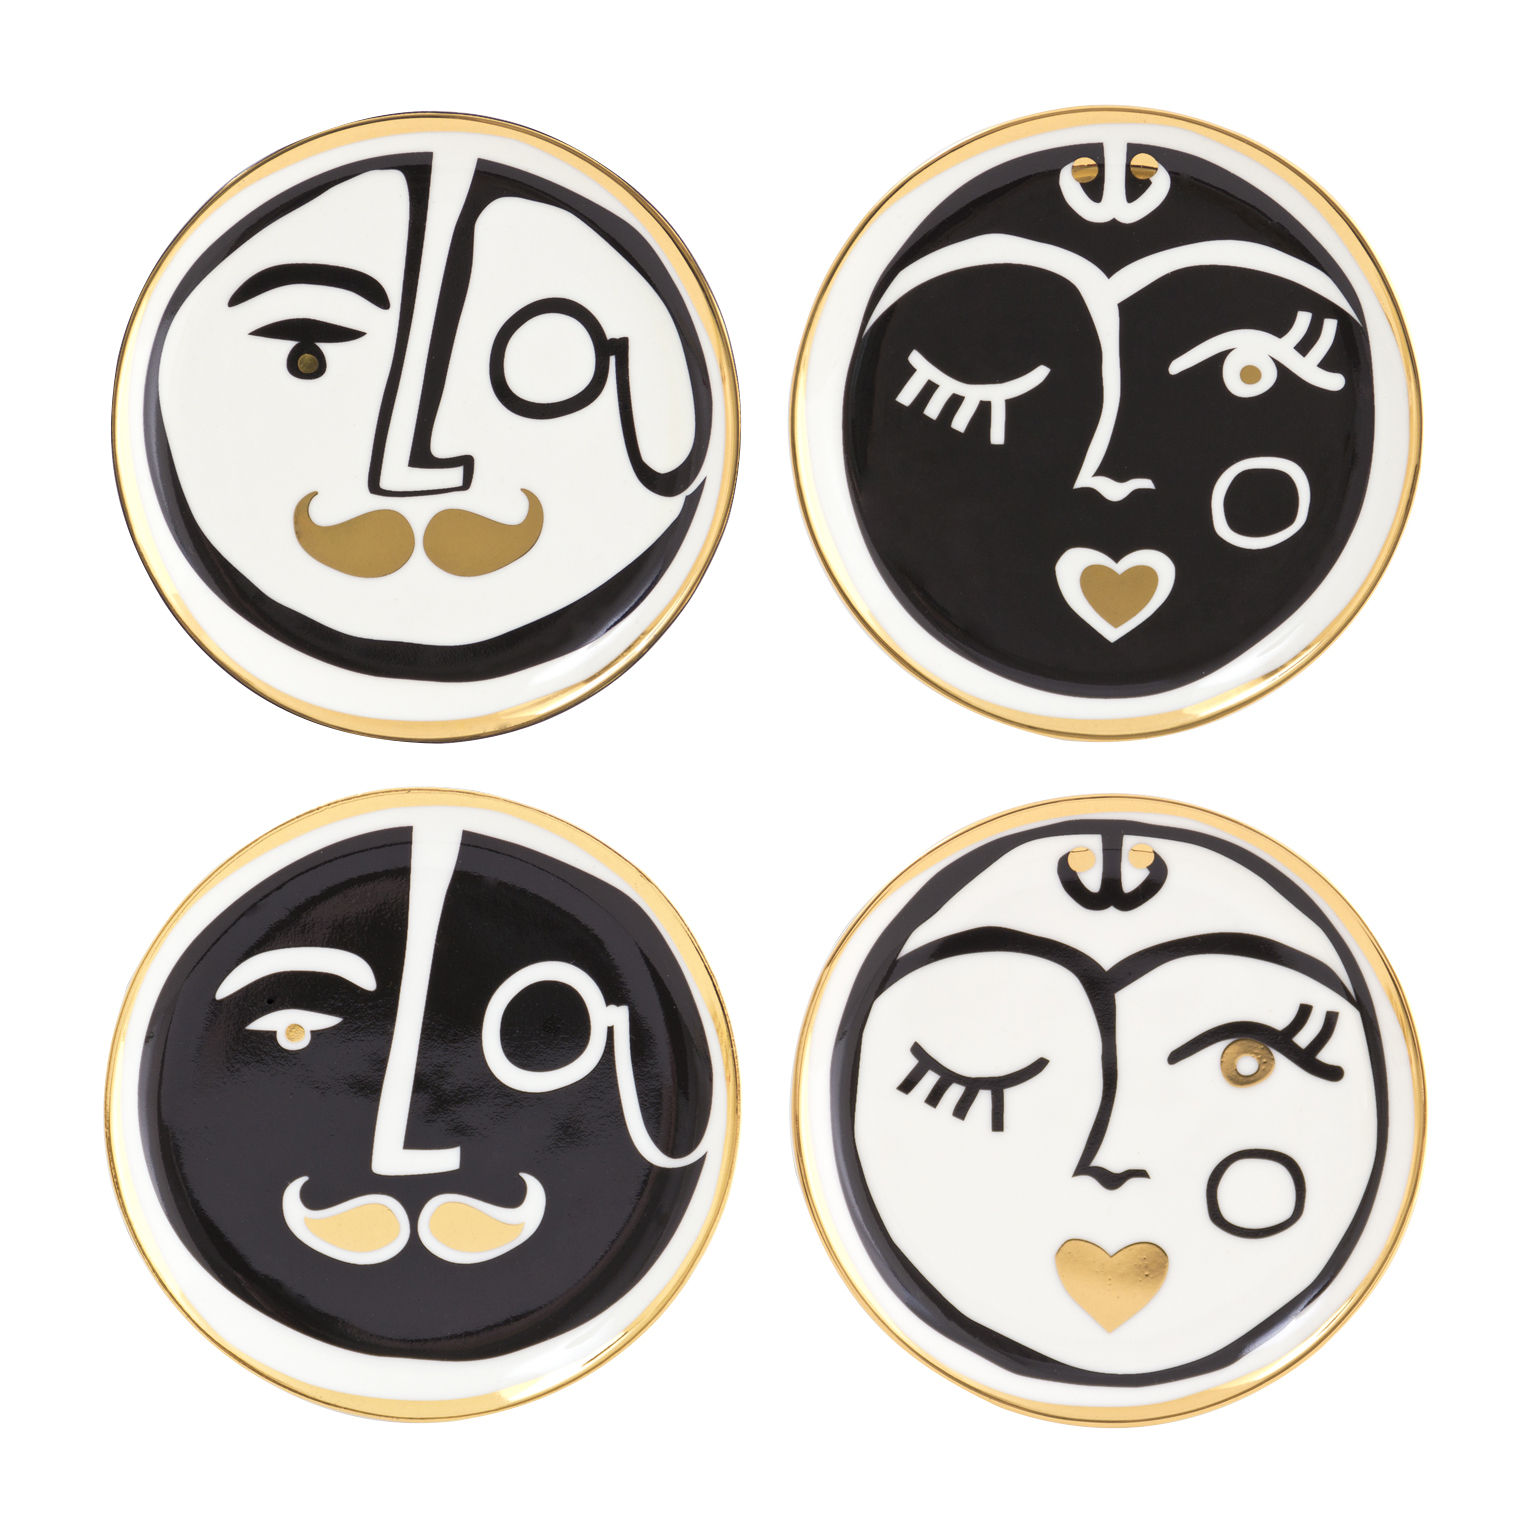 Tableware - Table Mats & Trivets - Marseilles Glass coaster - / Set of 4 - China & 24-carat gold by Jonathan Adler - Black, White & gold - China